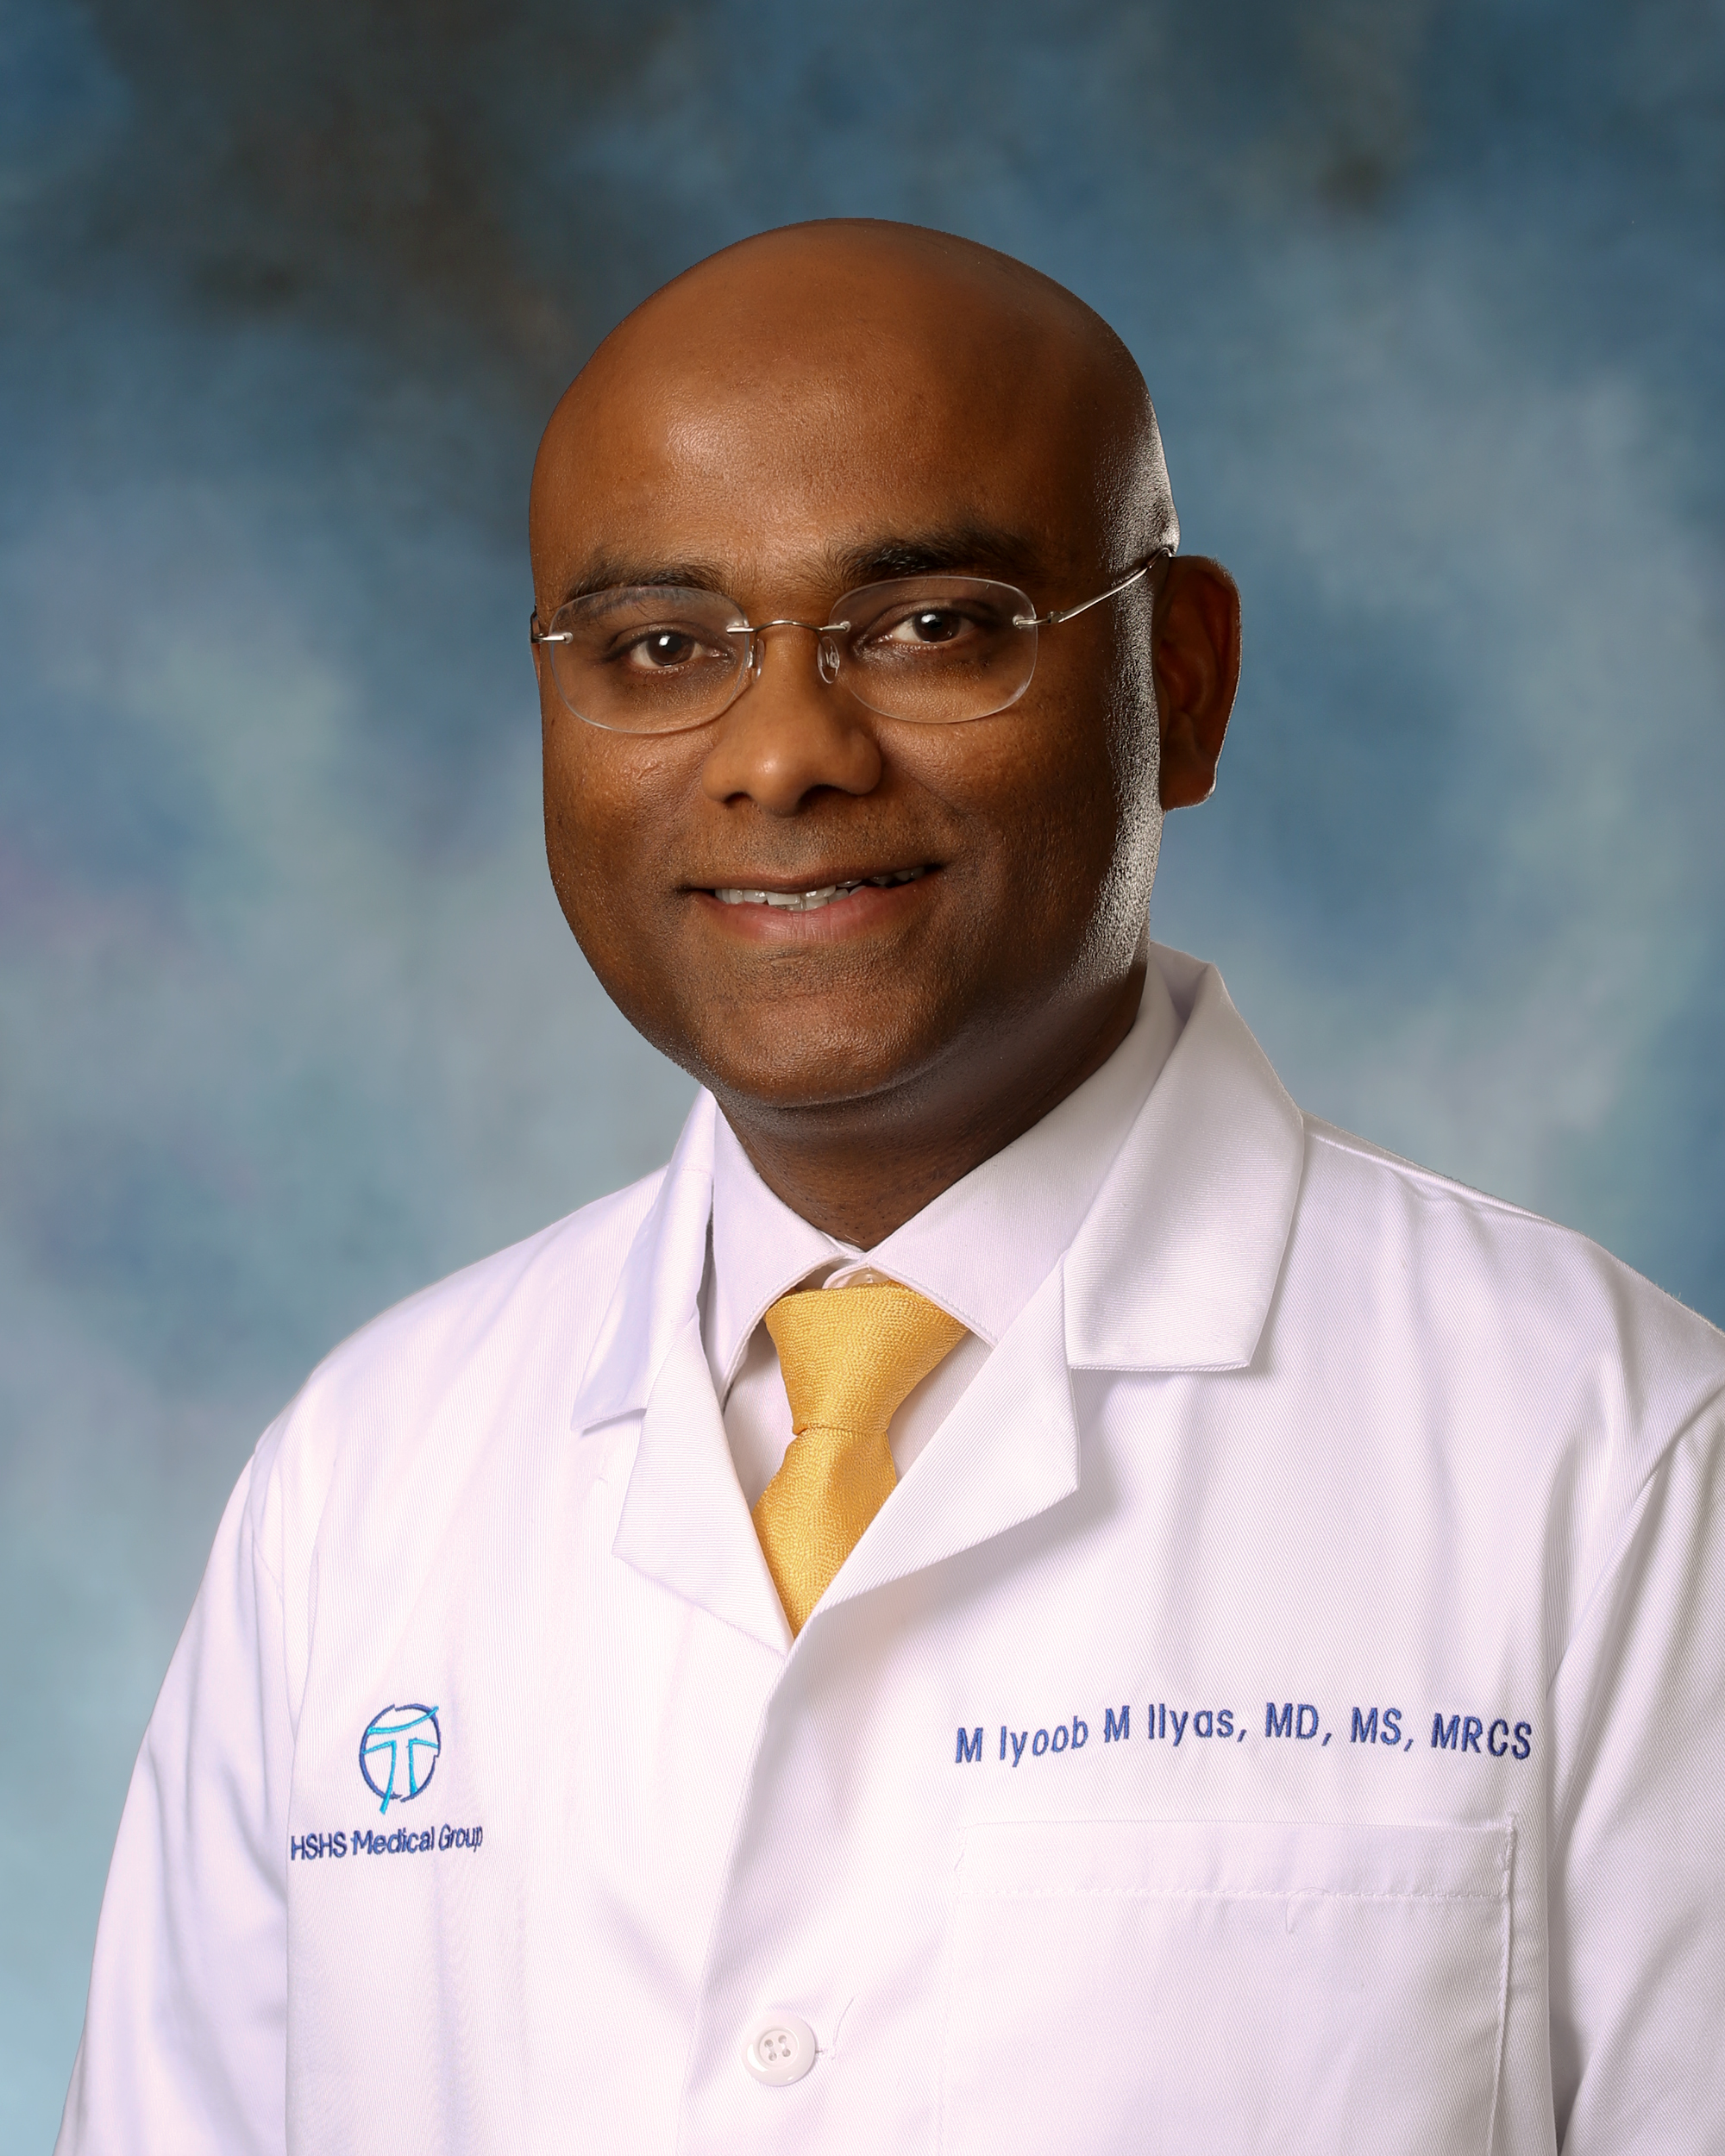 HSHS Medical Group Surgeon Offers Expanded Colorectal Services